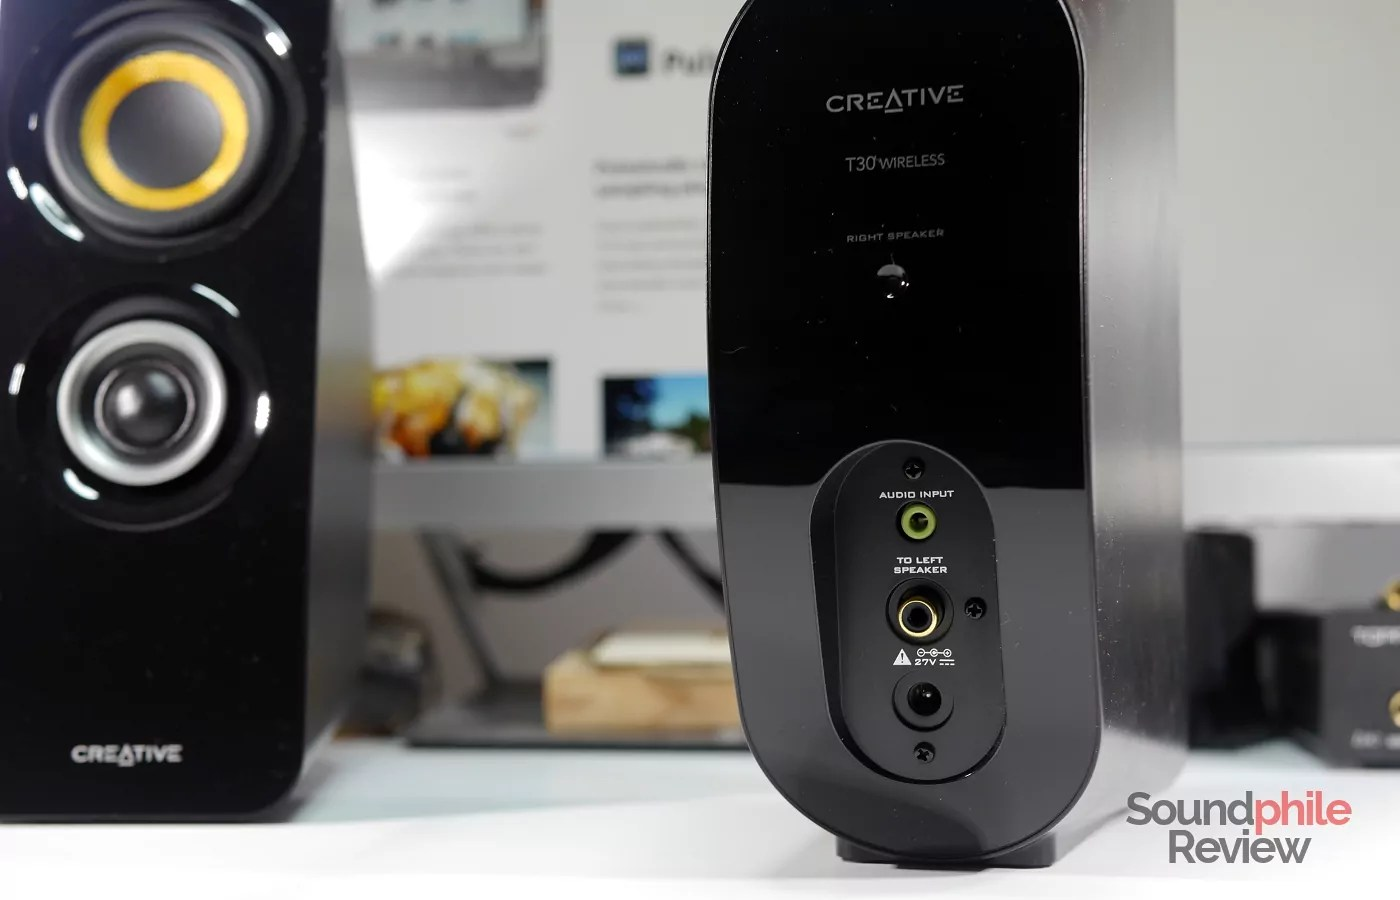 Creative T30 Wireless Bluetooth Speaker 2.0 Equipped with NFC Connectivity Black